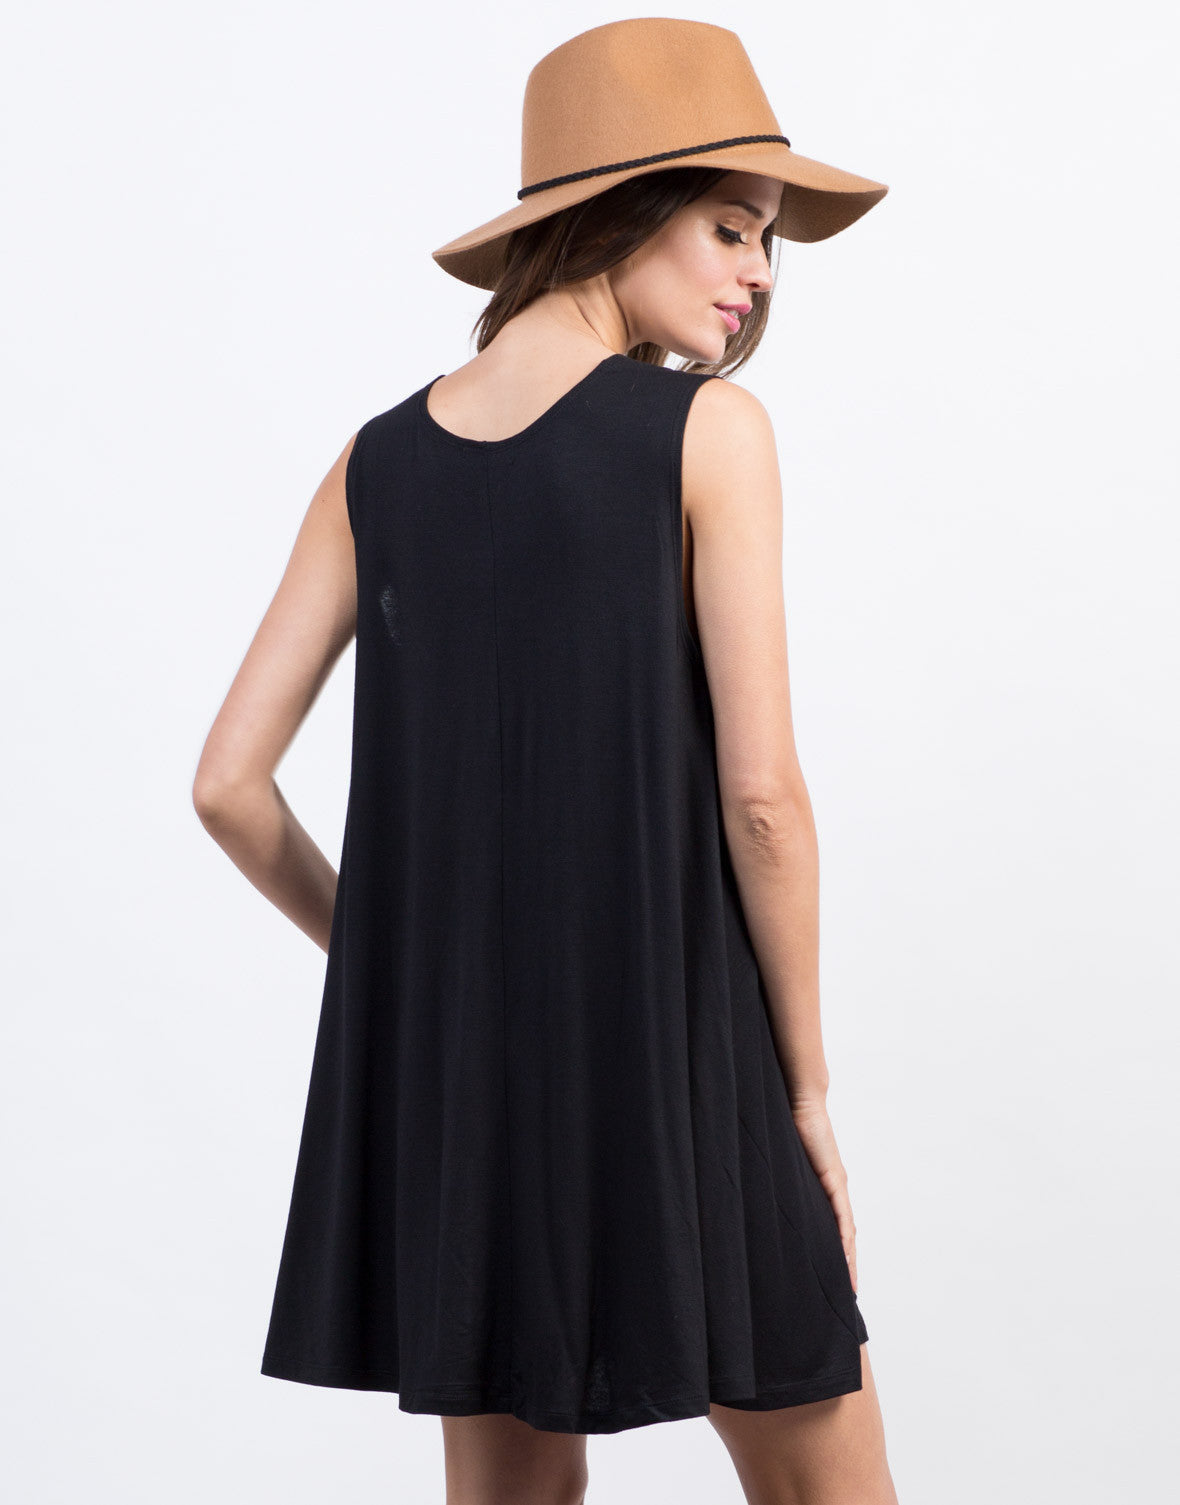 Back View of Simple Tank Dress